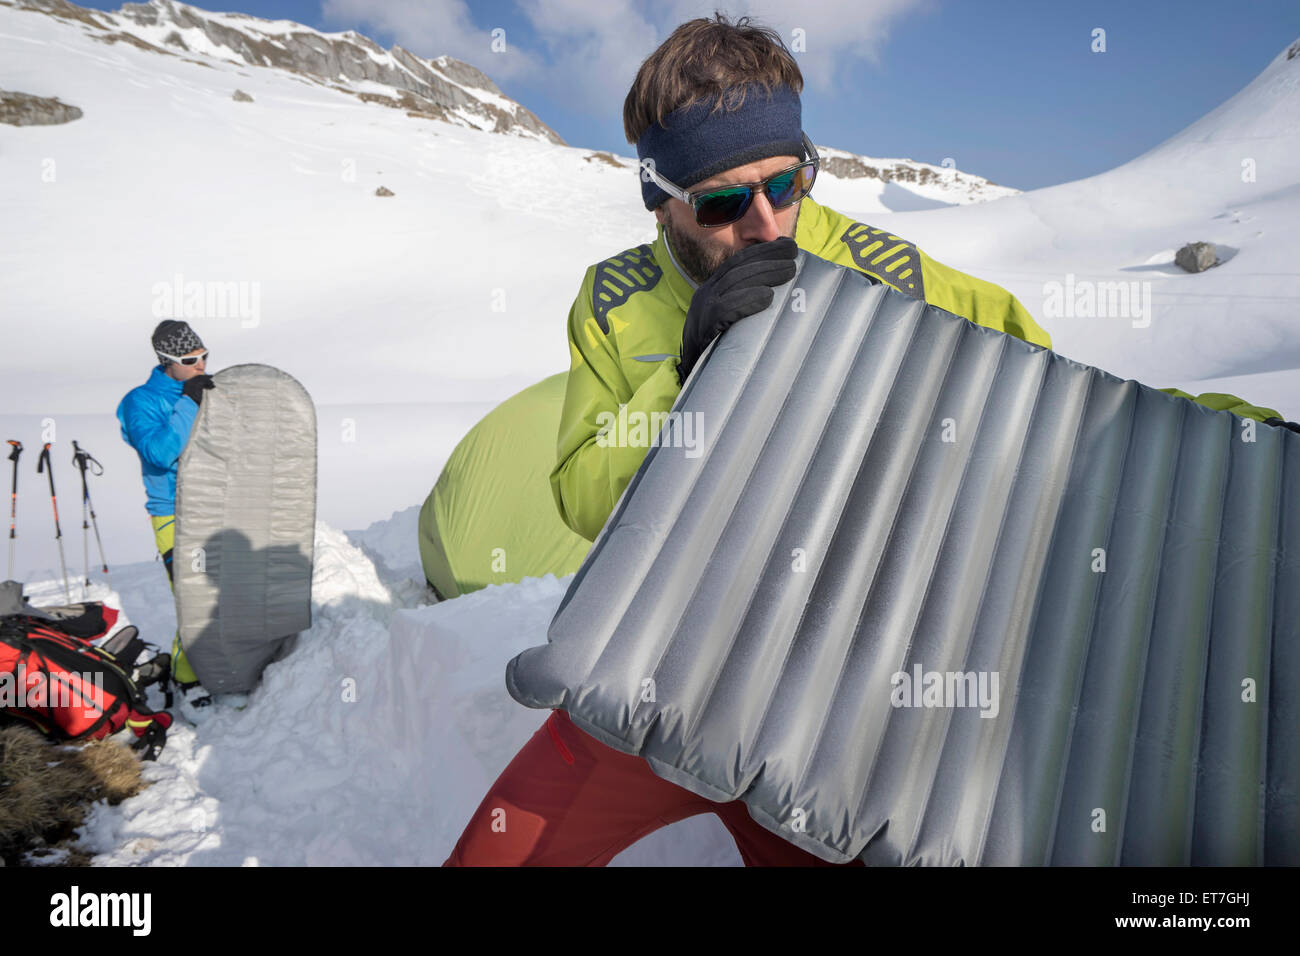 Two men blowing into air mattresses for camping, Tyrol, Austria - Stock Image